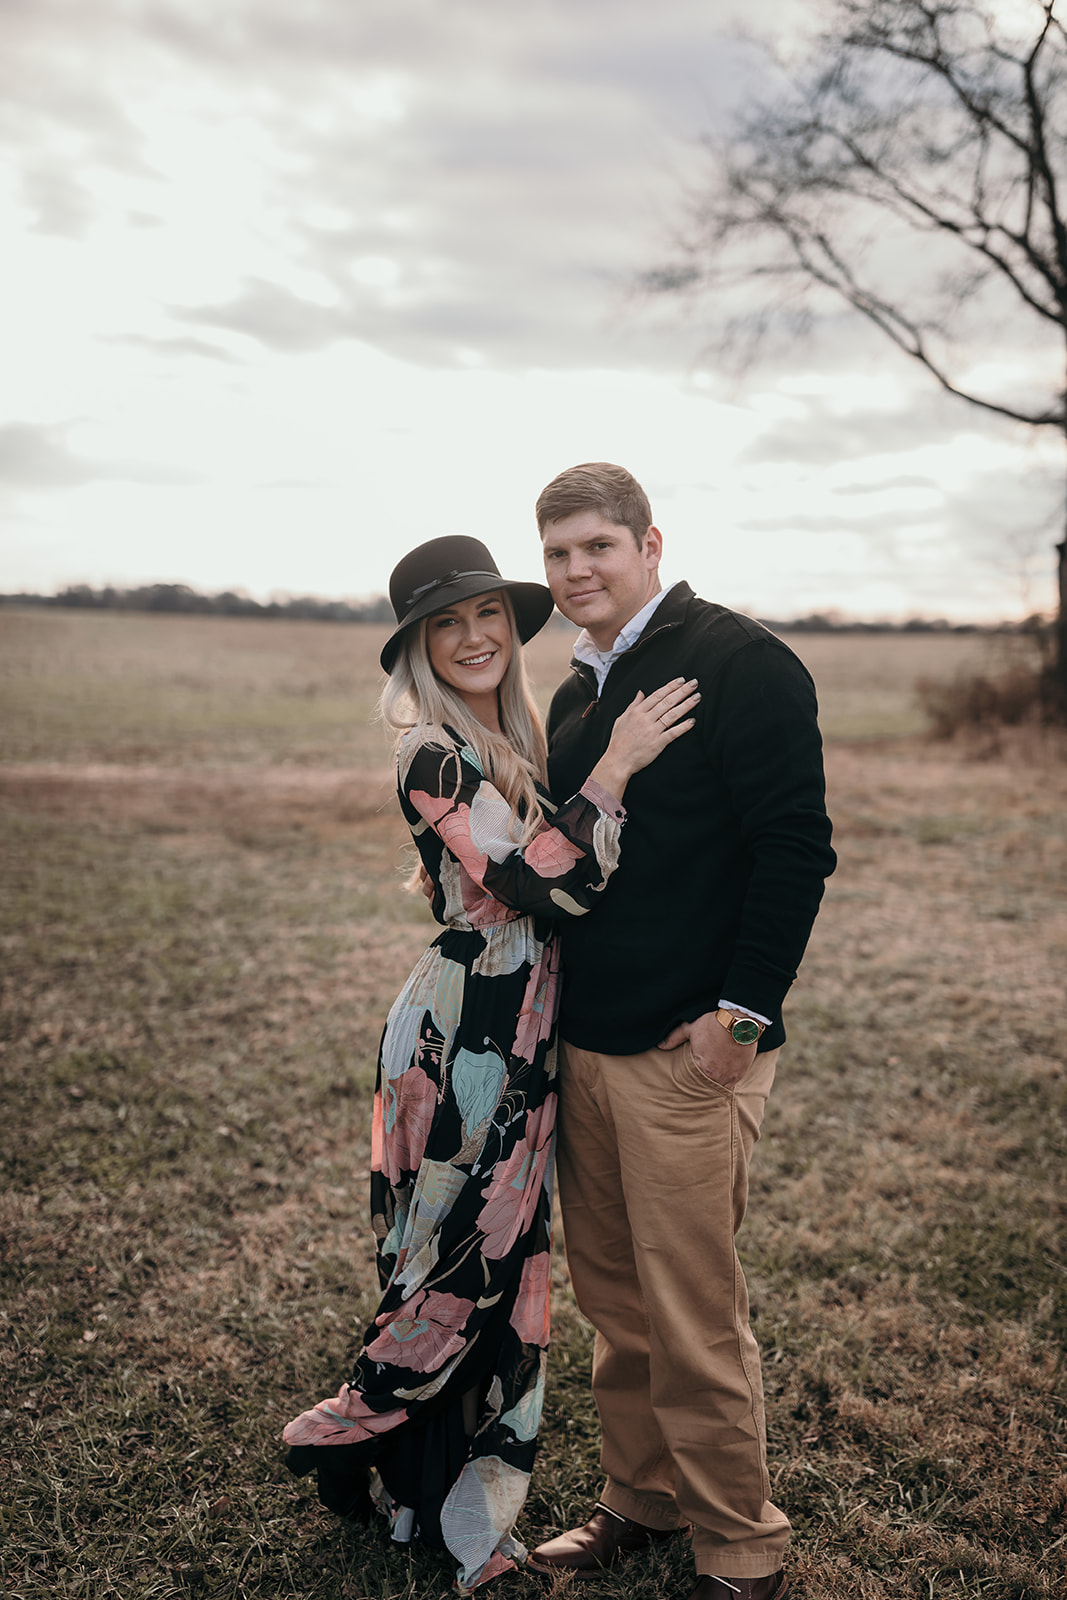 Couple standing together in a field smiling